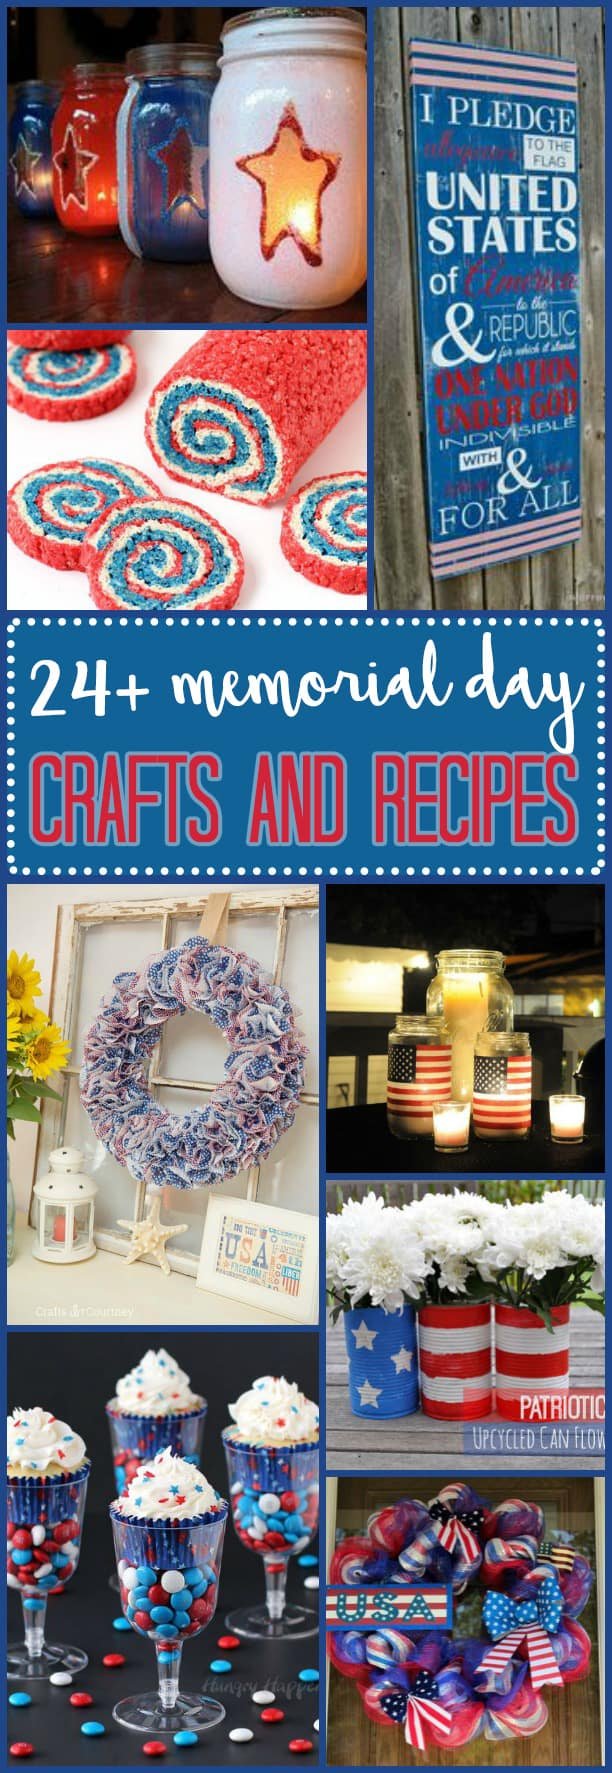 Memorial Day Crafts: remember those who've fallen in active duty and enlighten your children on the importance of this day by creating something of meaning.